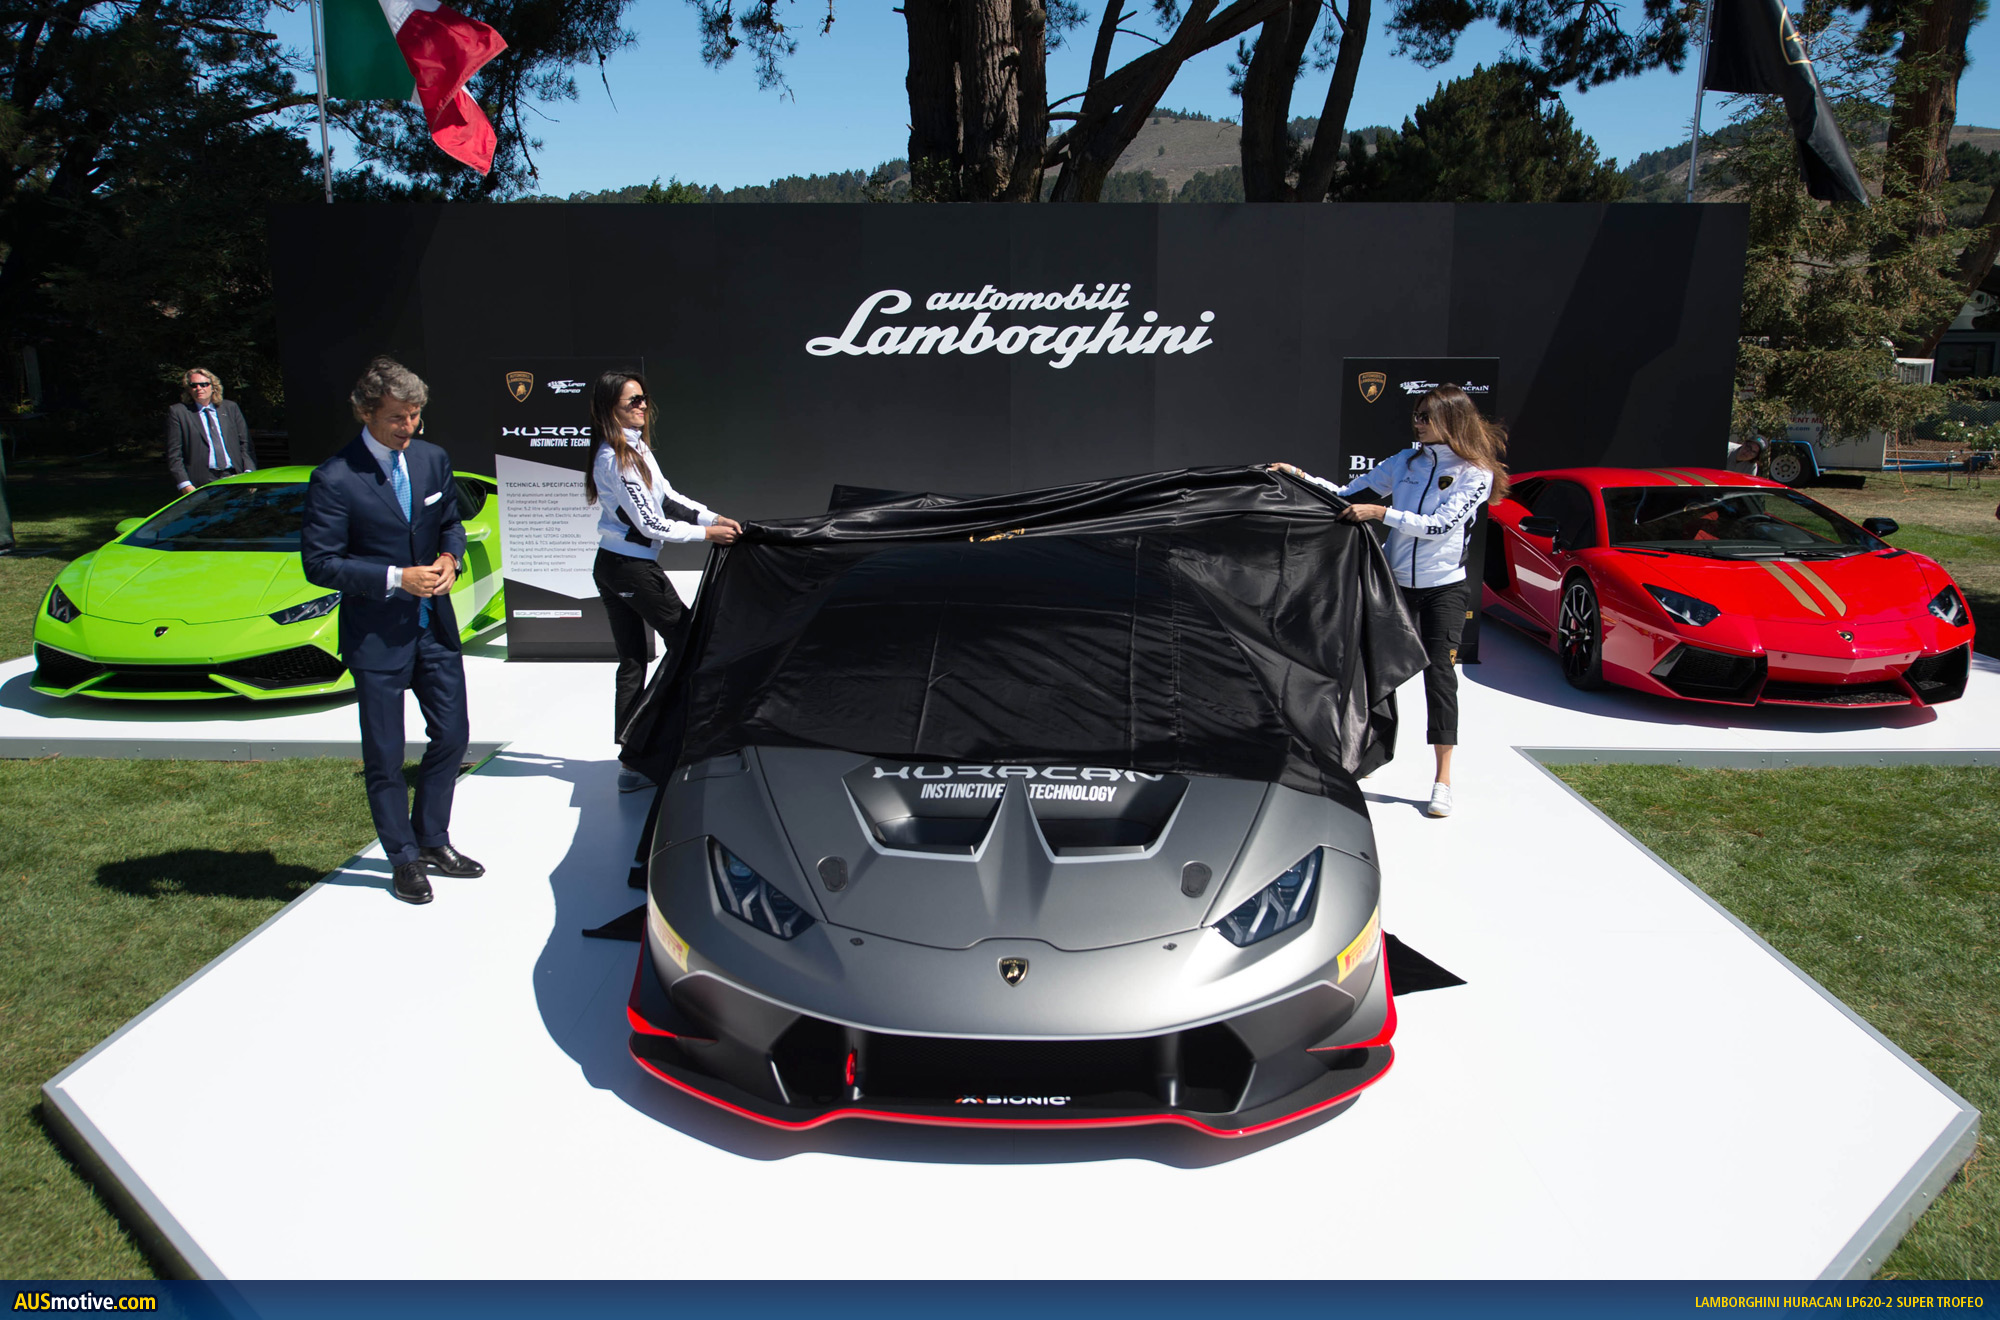 AUSmotive.com » Lamborghini Huracan LP620-2 Super Trofeo revealed on bugatti engineer, tesla engineer, general motors engineer, ford engineer, mercedes engineer, toyota engineer,